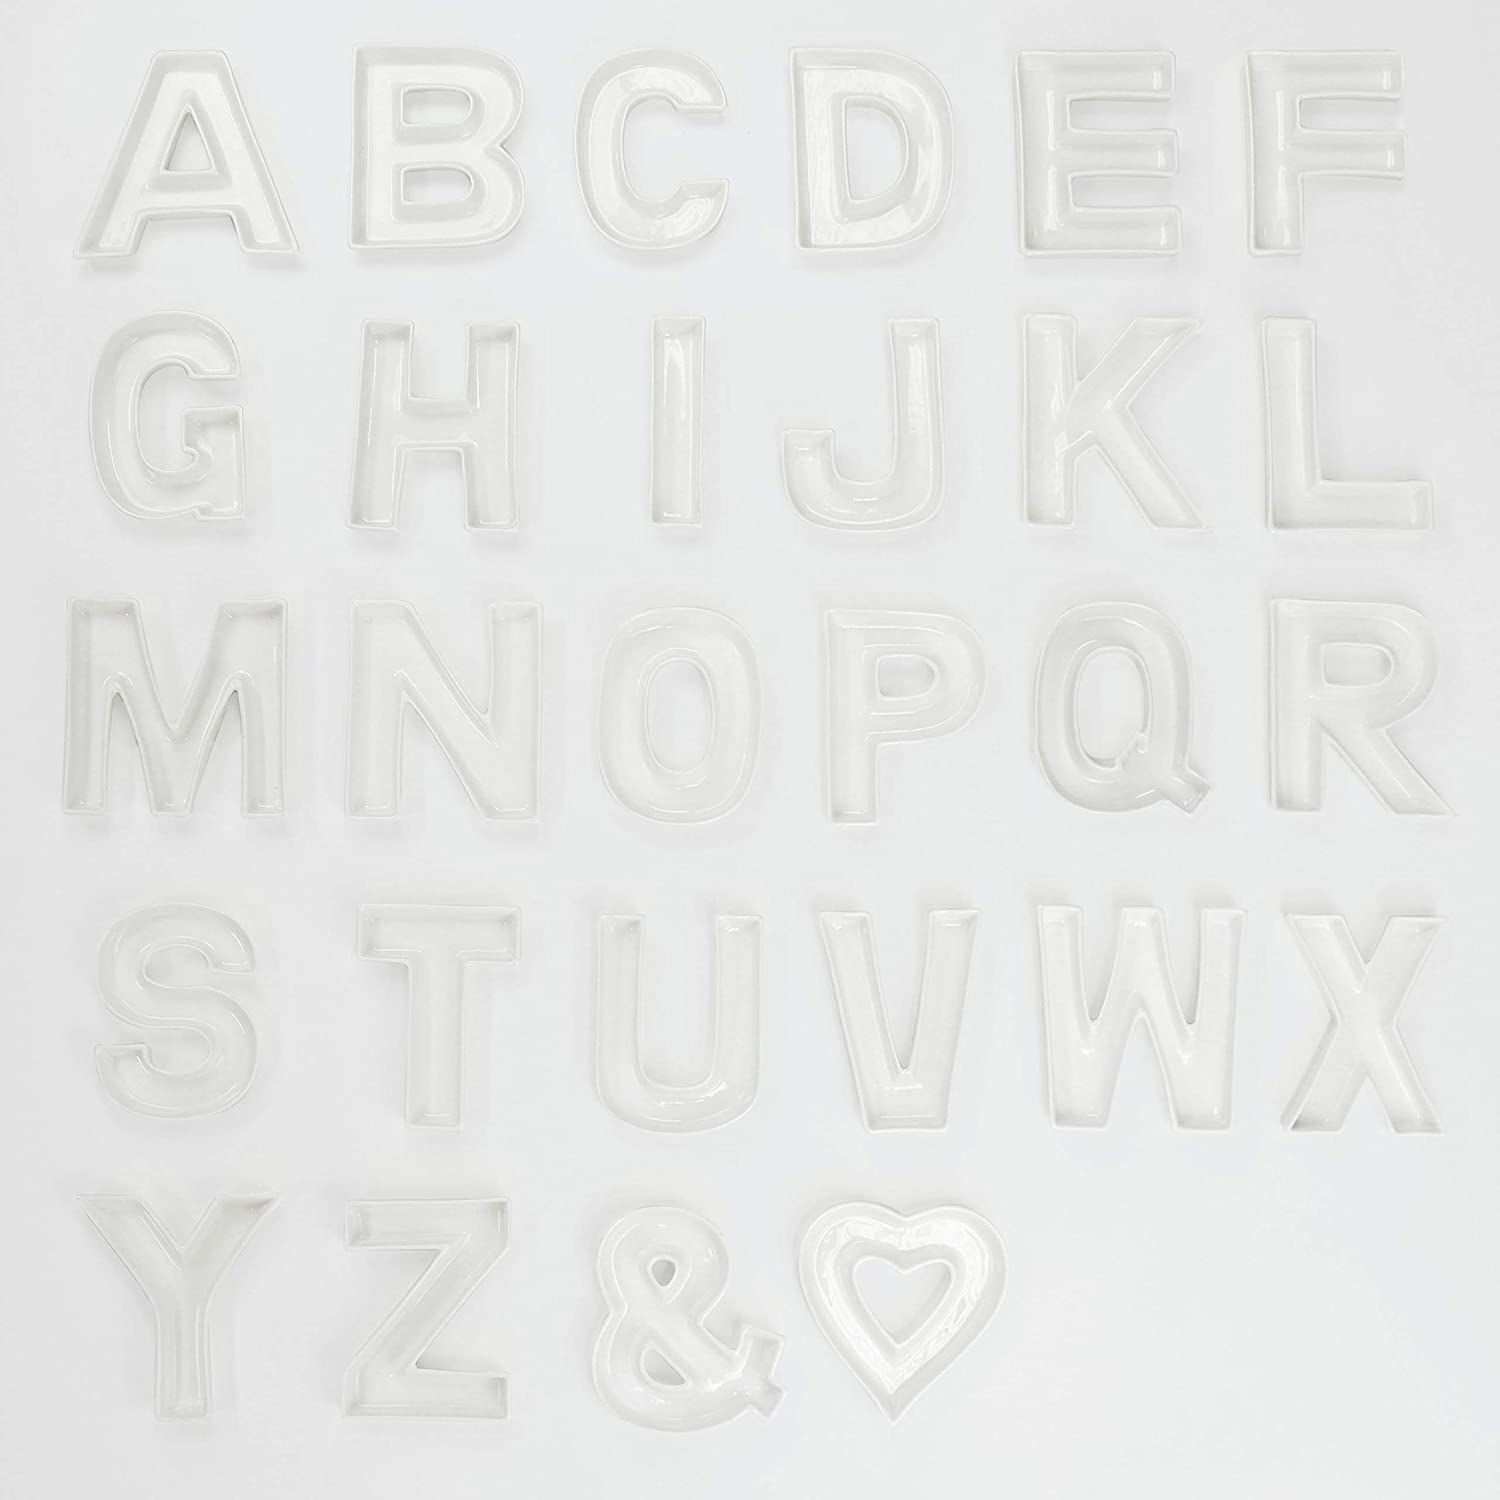 Letter: N Just Artifacts Baby Showers Anniversarys Decorative Dishes for Weddings 5.5inch White Ceramic Letter Dish Birthday Parties and Life Celebrations!